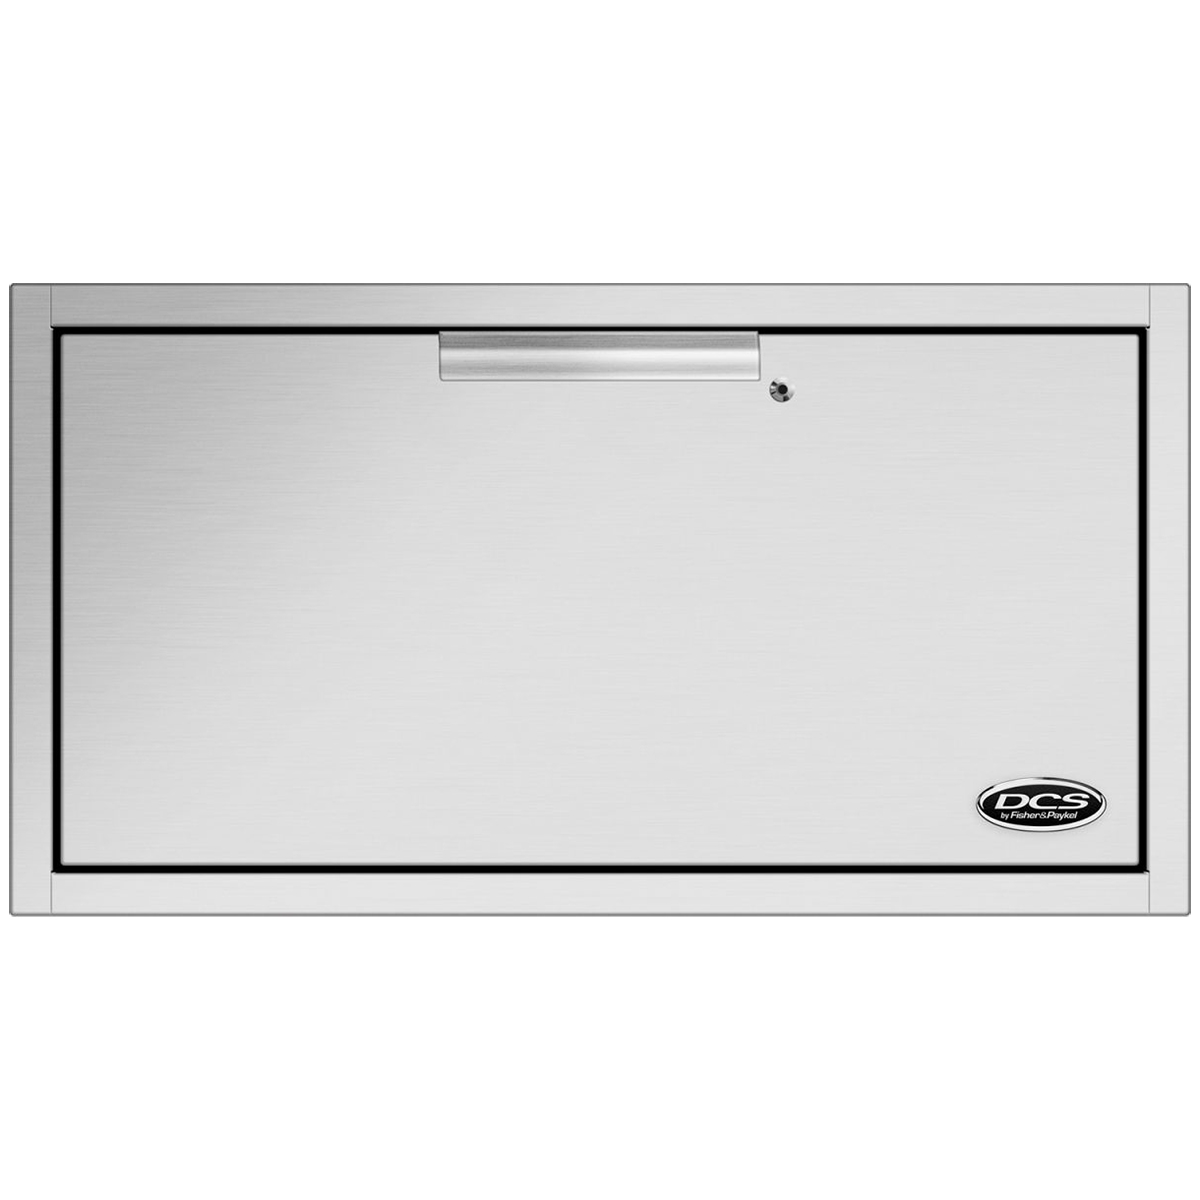 DCS Warming Drawer for Outdoor Kitchens